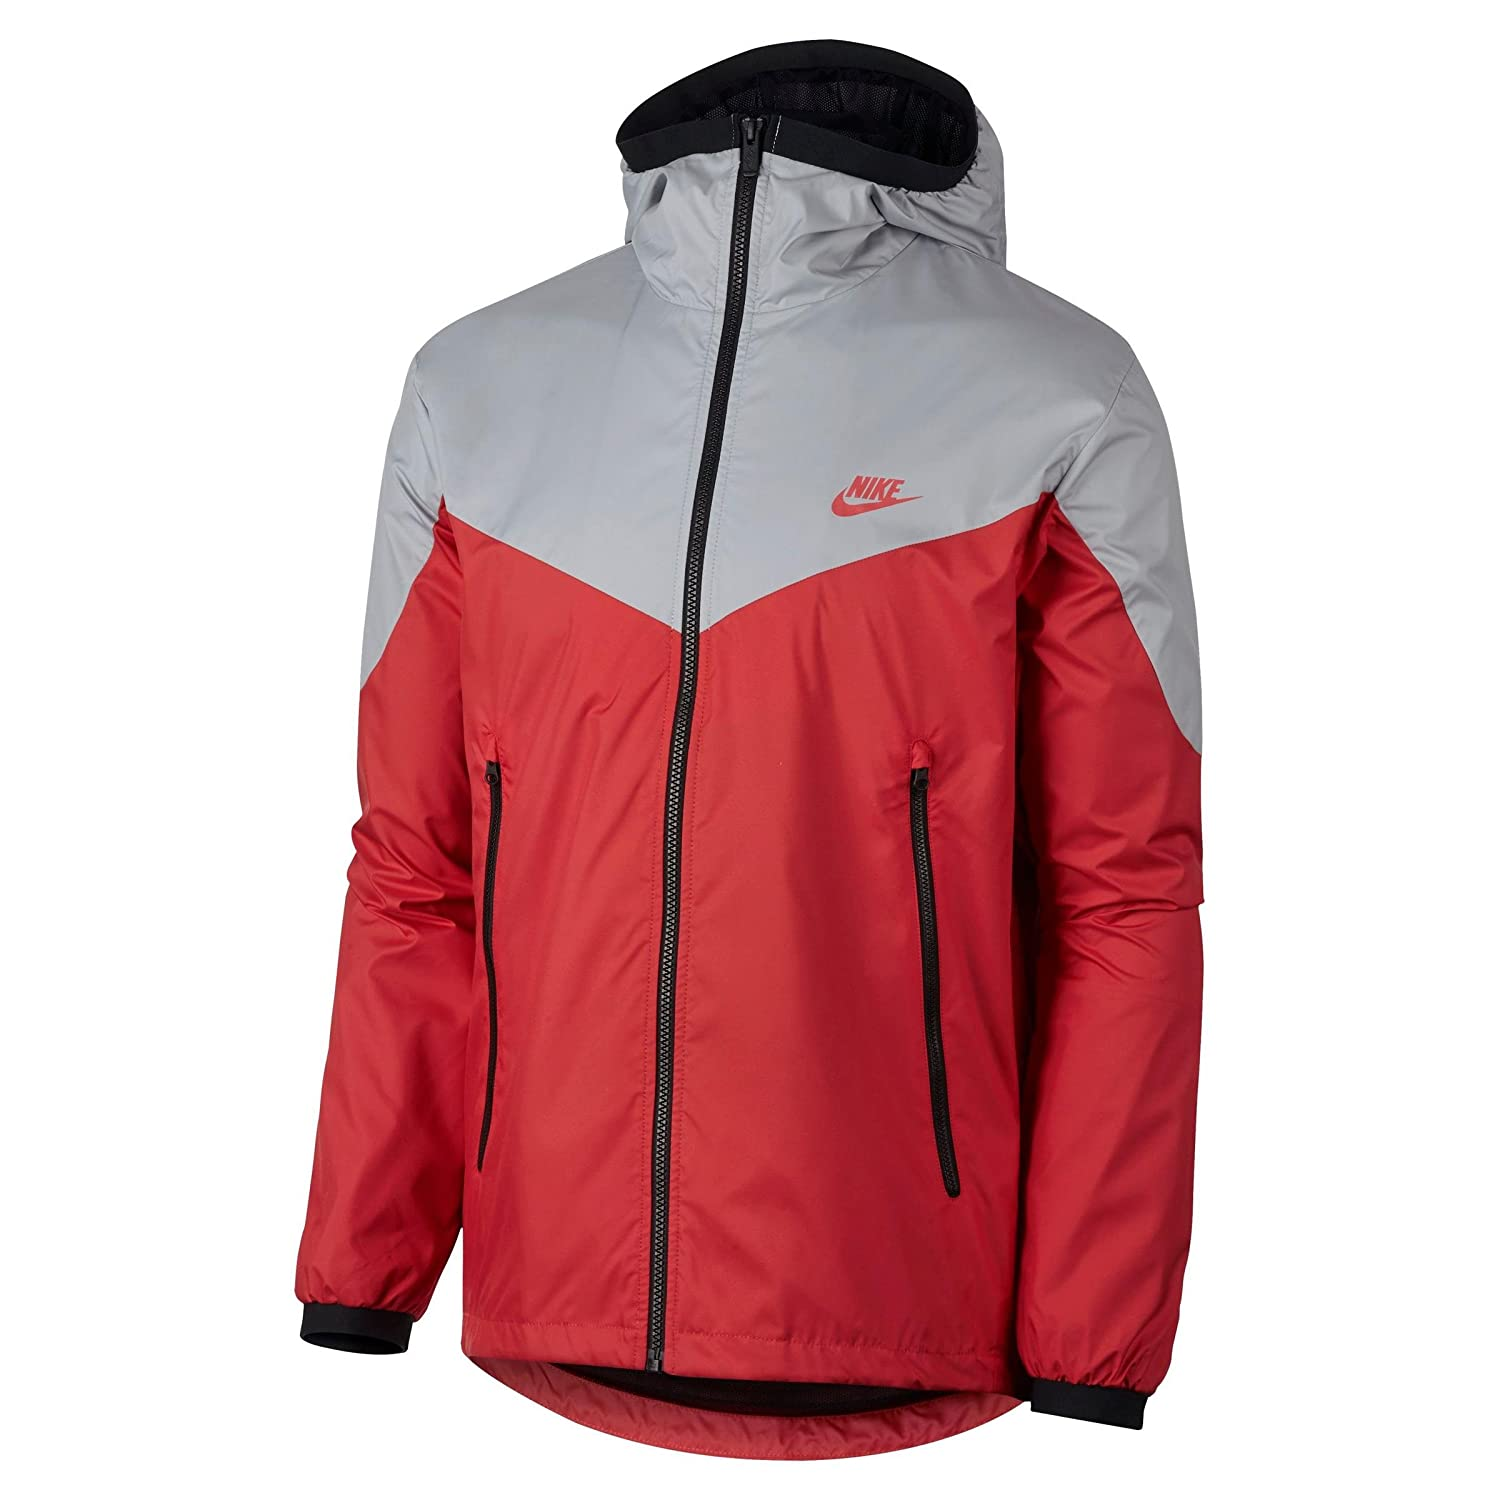 NIKE Mens Windrunner Hooded Track Jacket (Red/Grey, XX-Large)